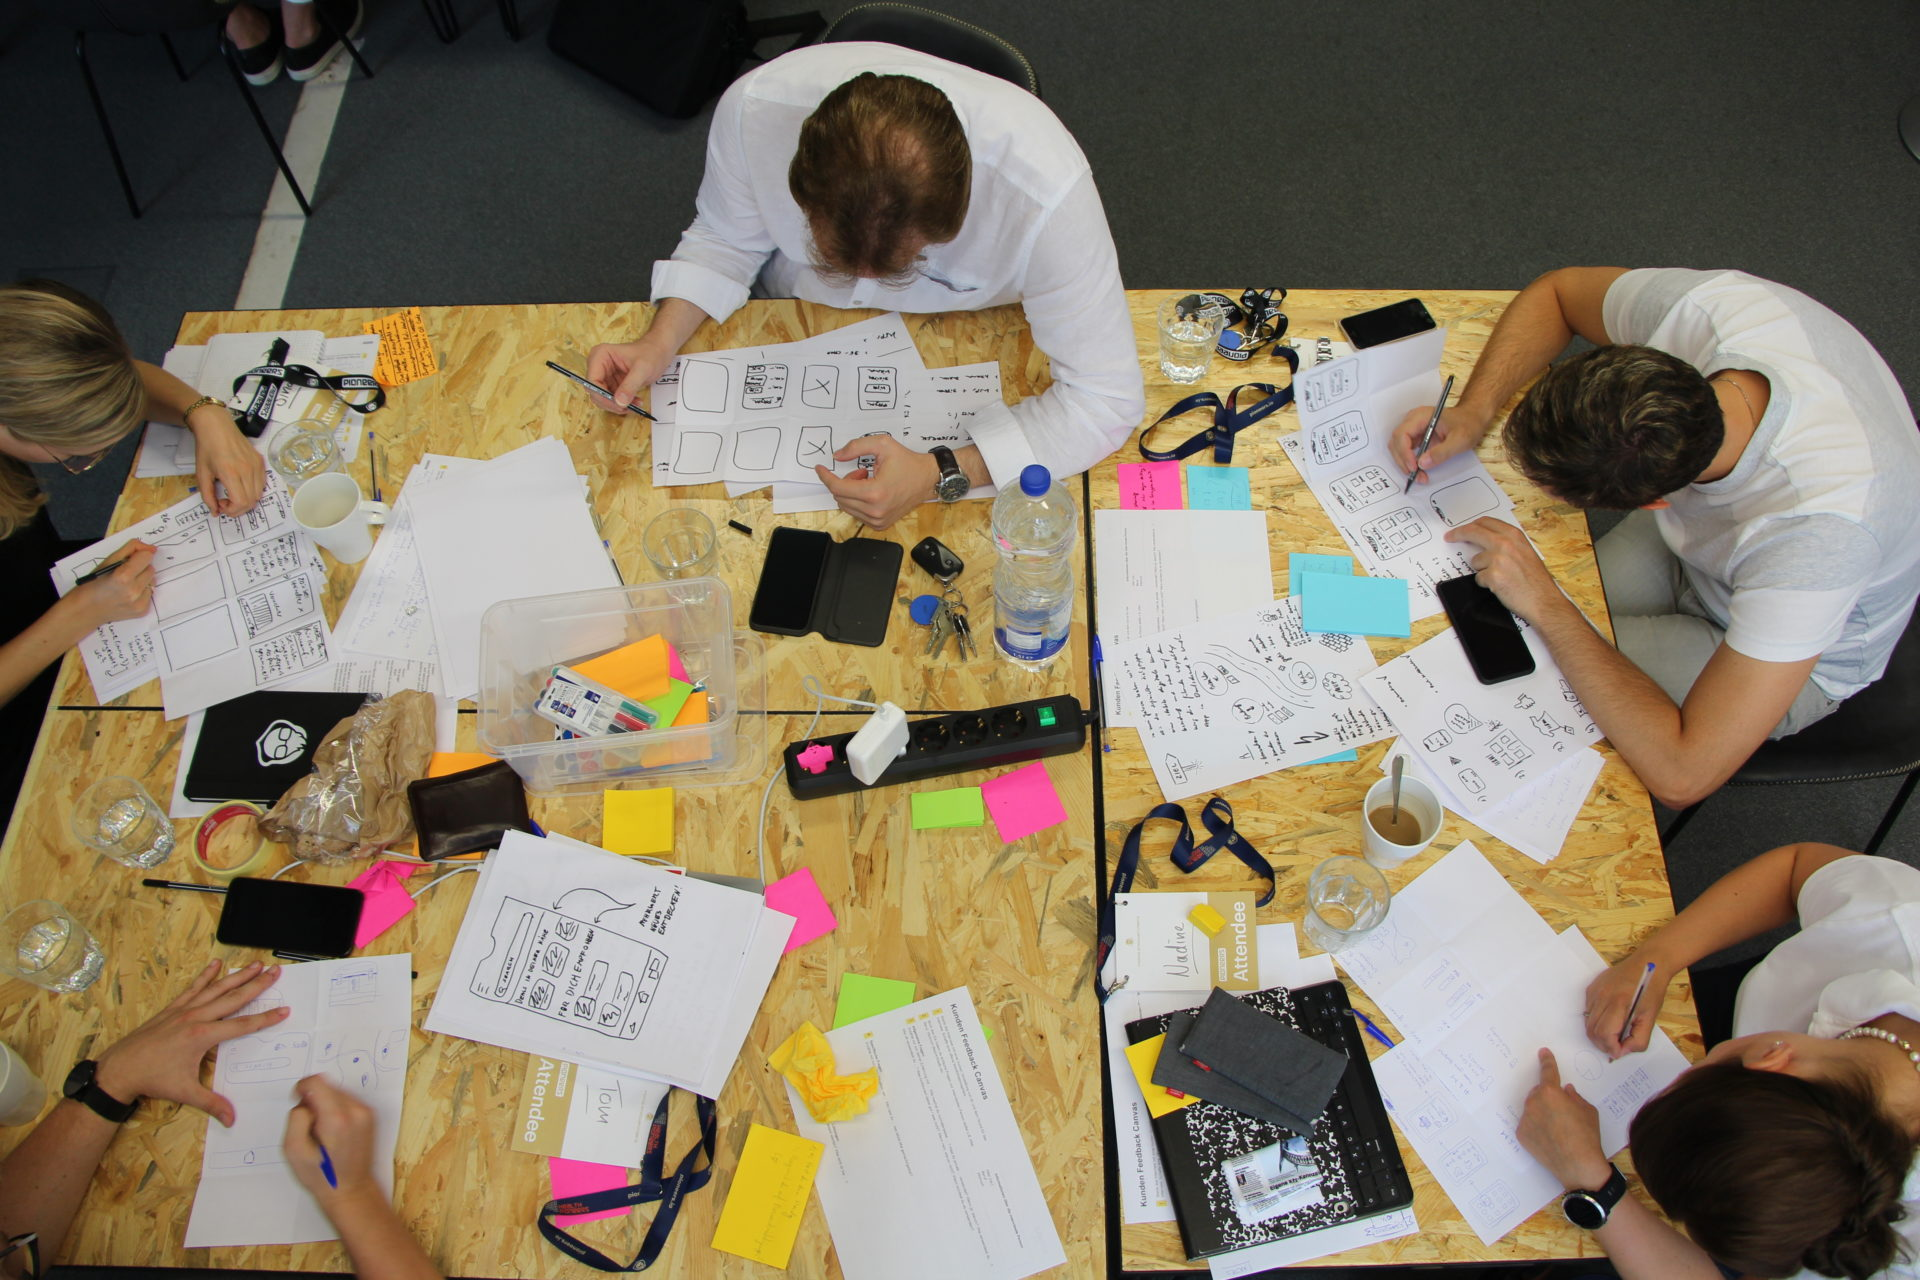 People working on a desk